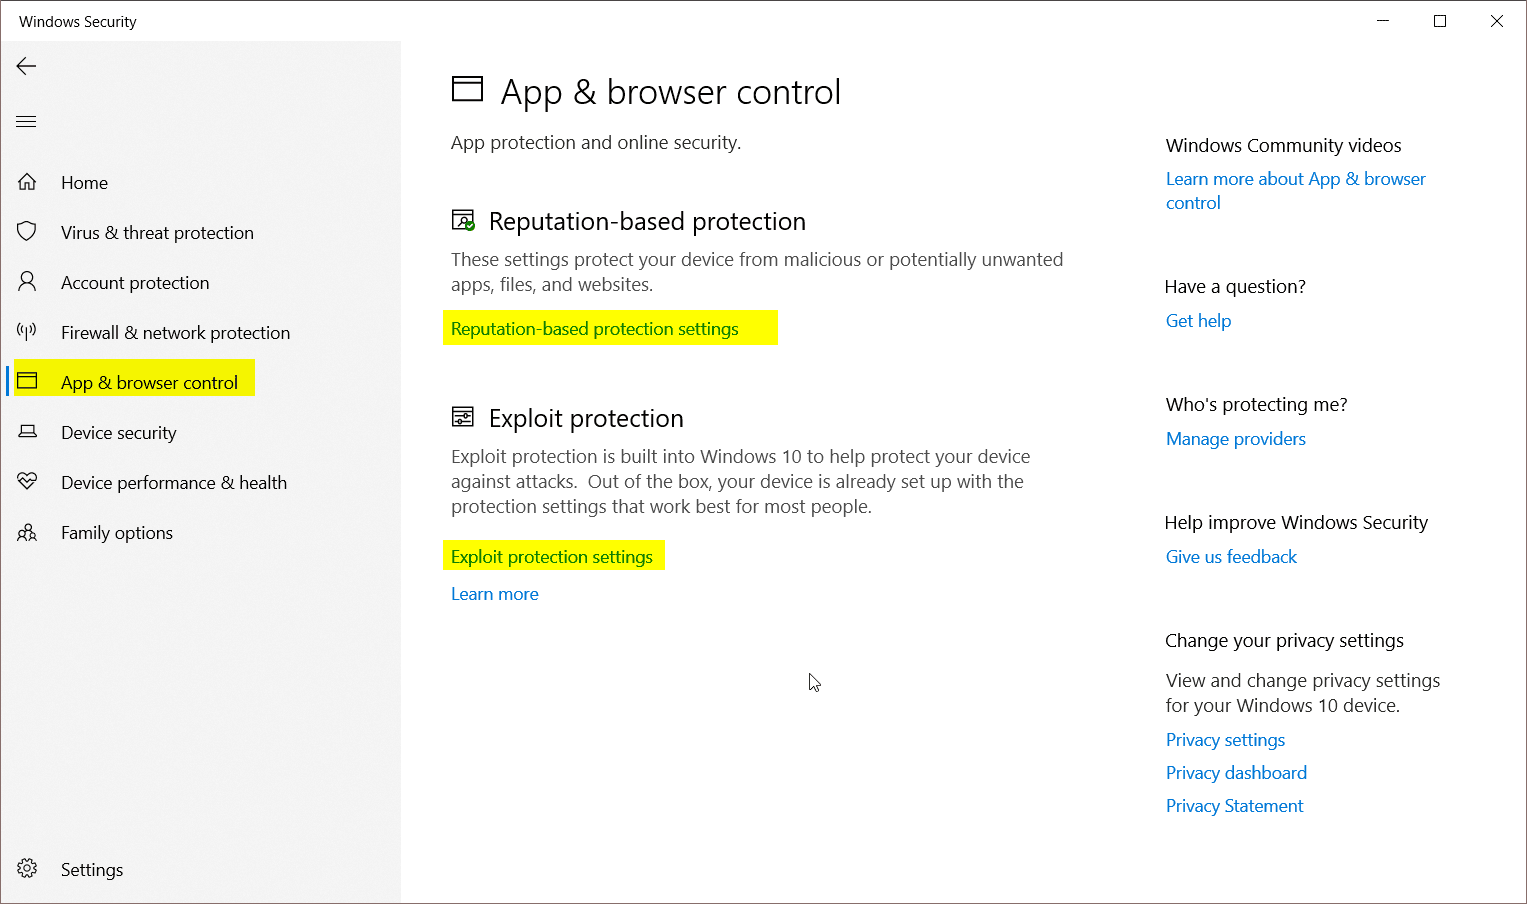 http://server.digimetriq.com/wp-content/uploads/2020/12/1608653296_234_10-Robust-features-of-Microsoft-Defender-for-Extra-Protection-of.png